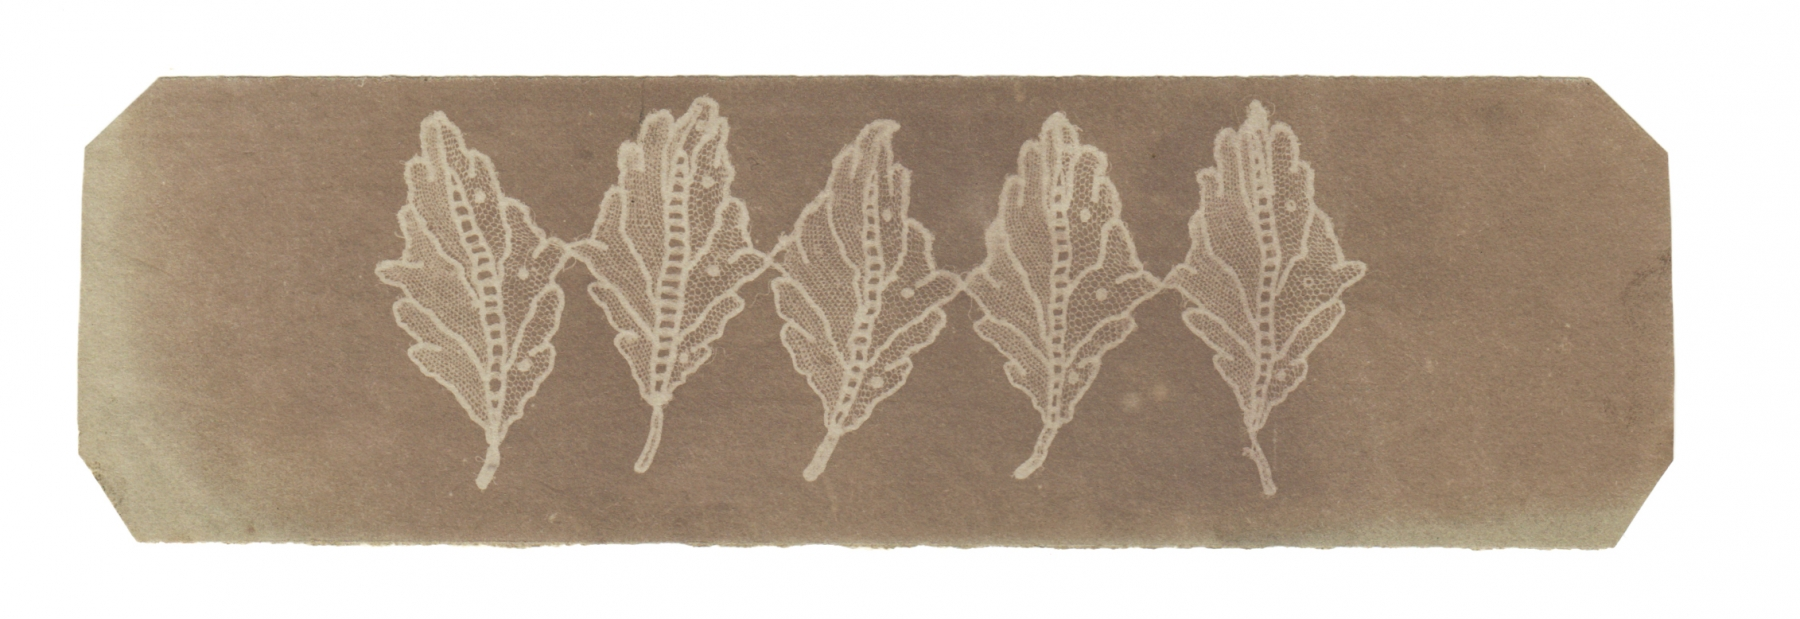 Attributed to Nevil STORY-MASKELYNE (English, 1823-1911) Leaves of lace, circa 1840 Photogenic drawing negative 5.0 x 17.0 cm, corners trimmed